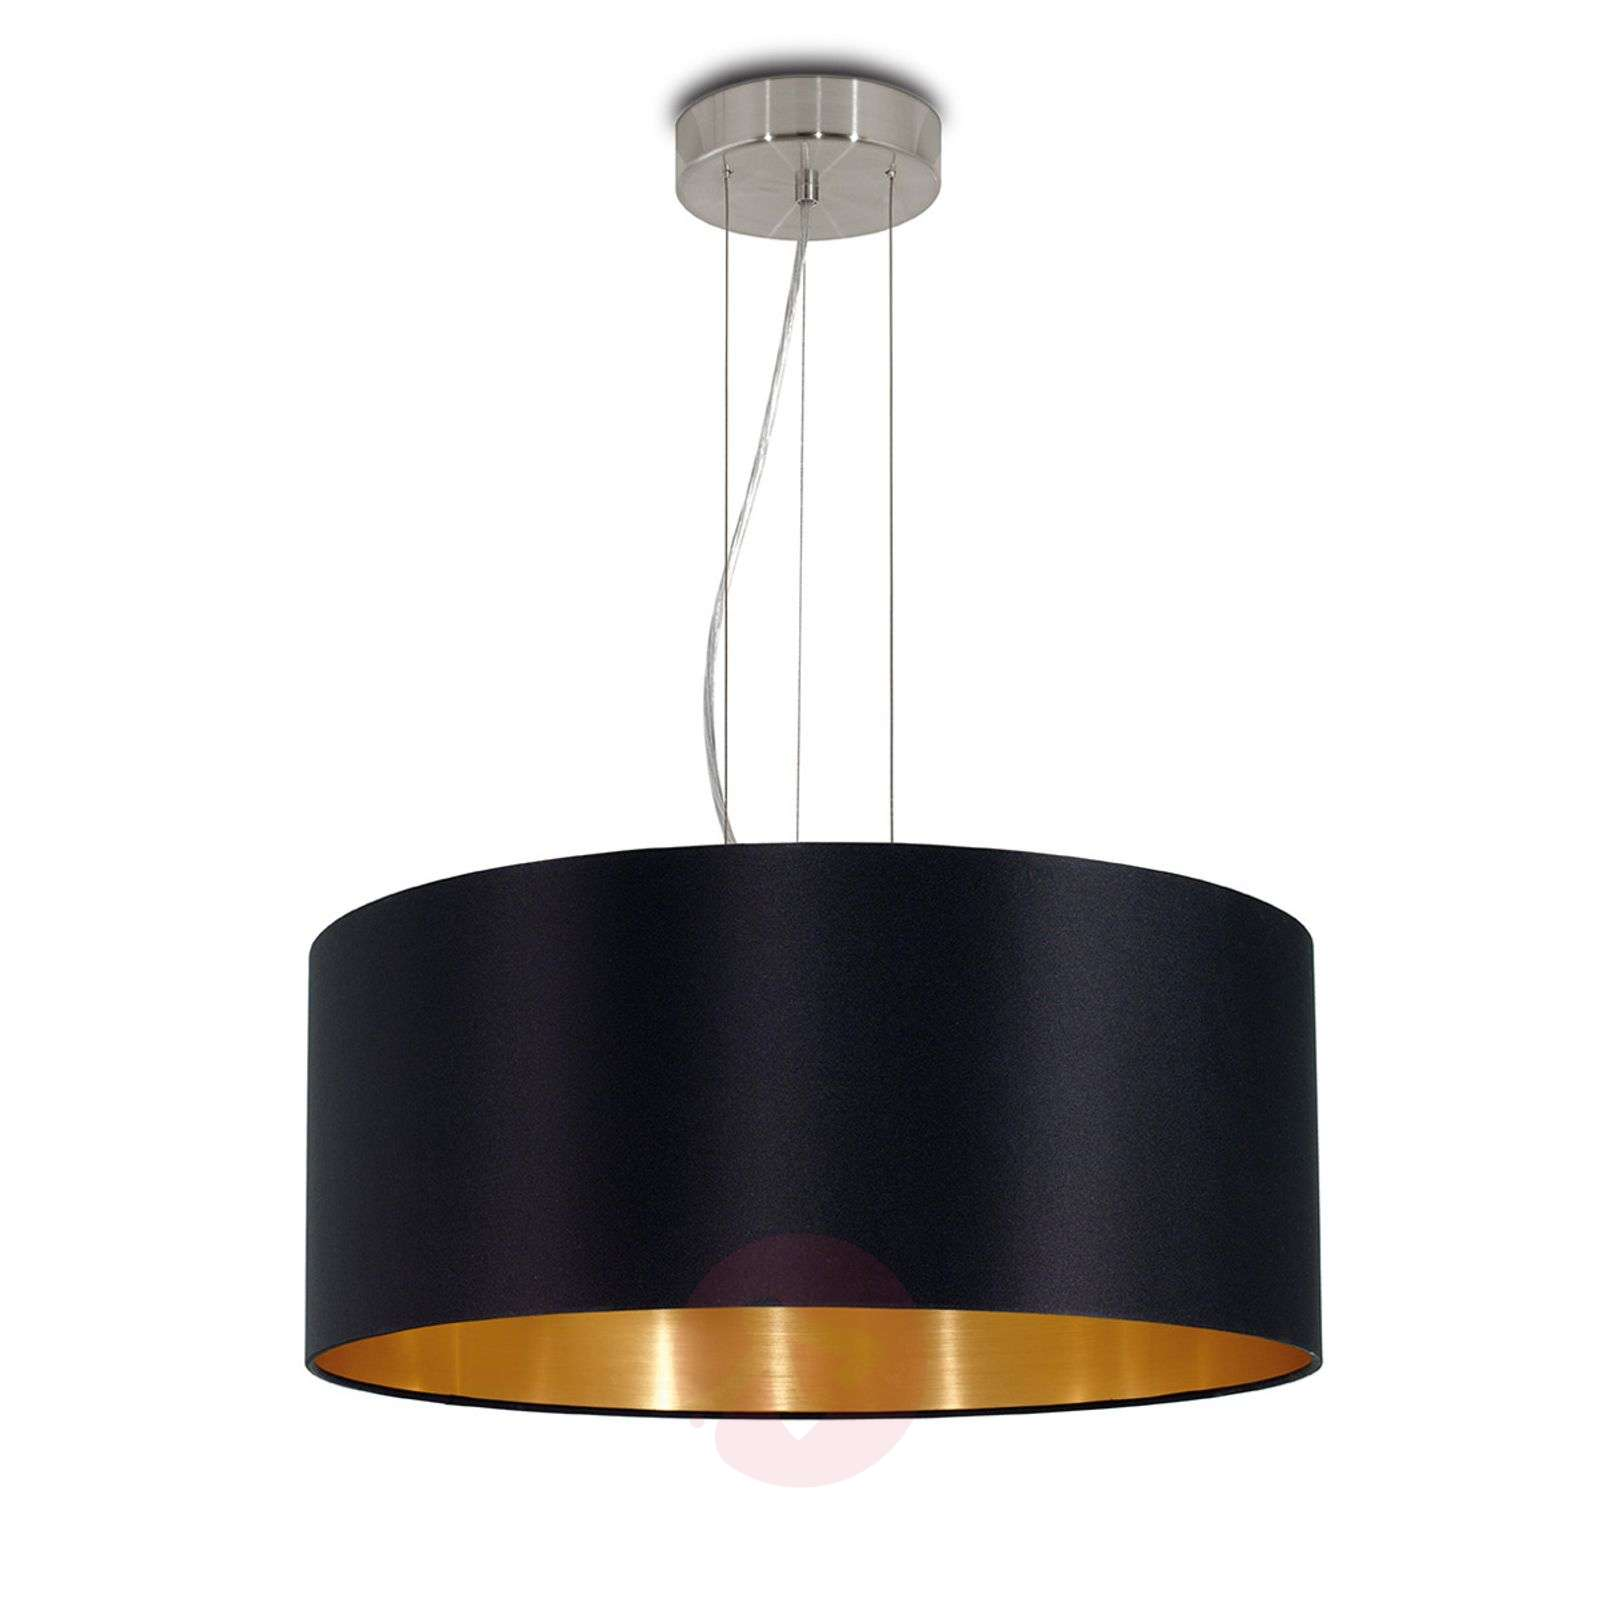 Lecio black-gold fabric hanging light-3031696-01